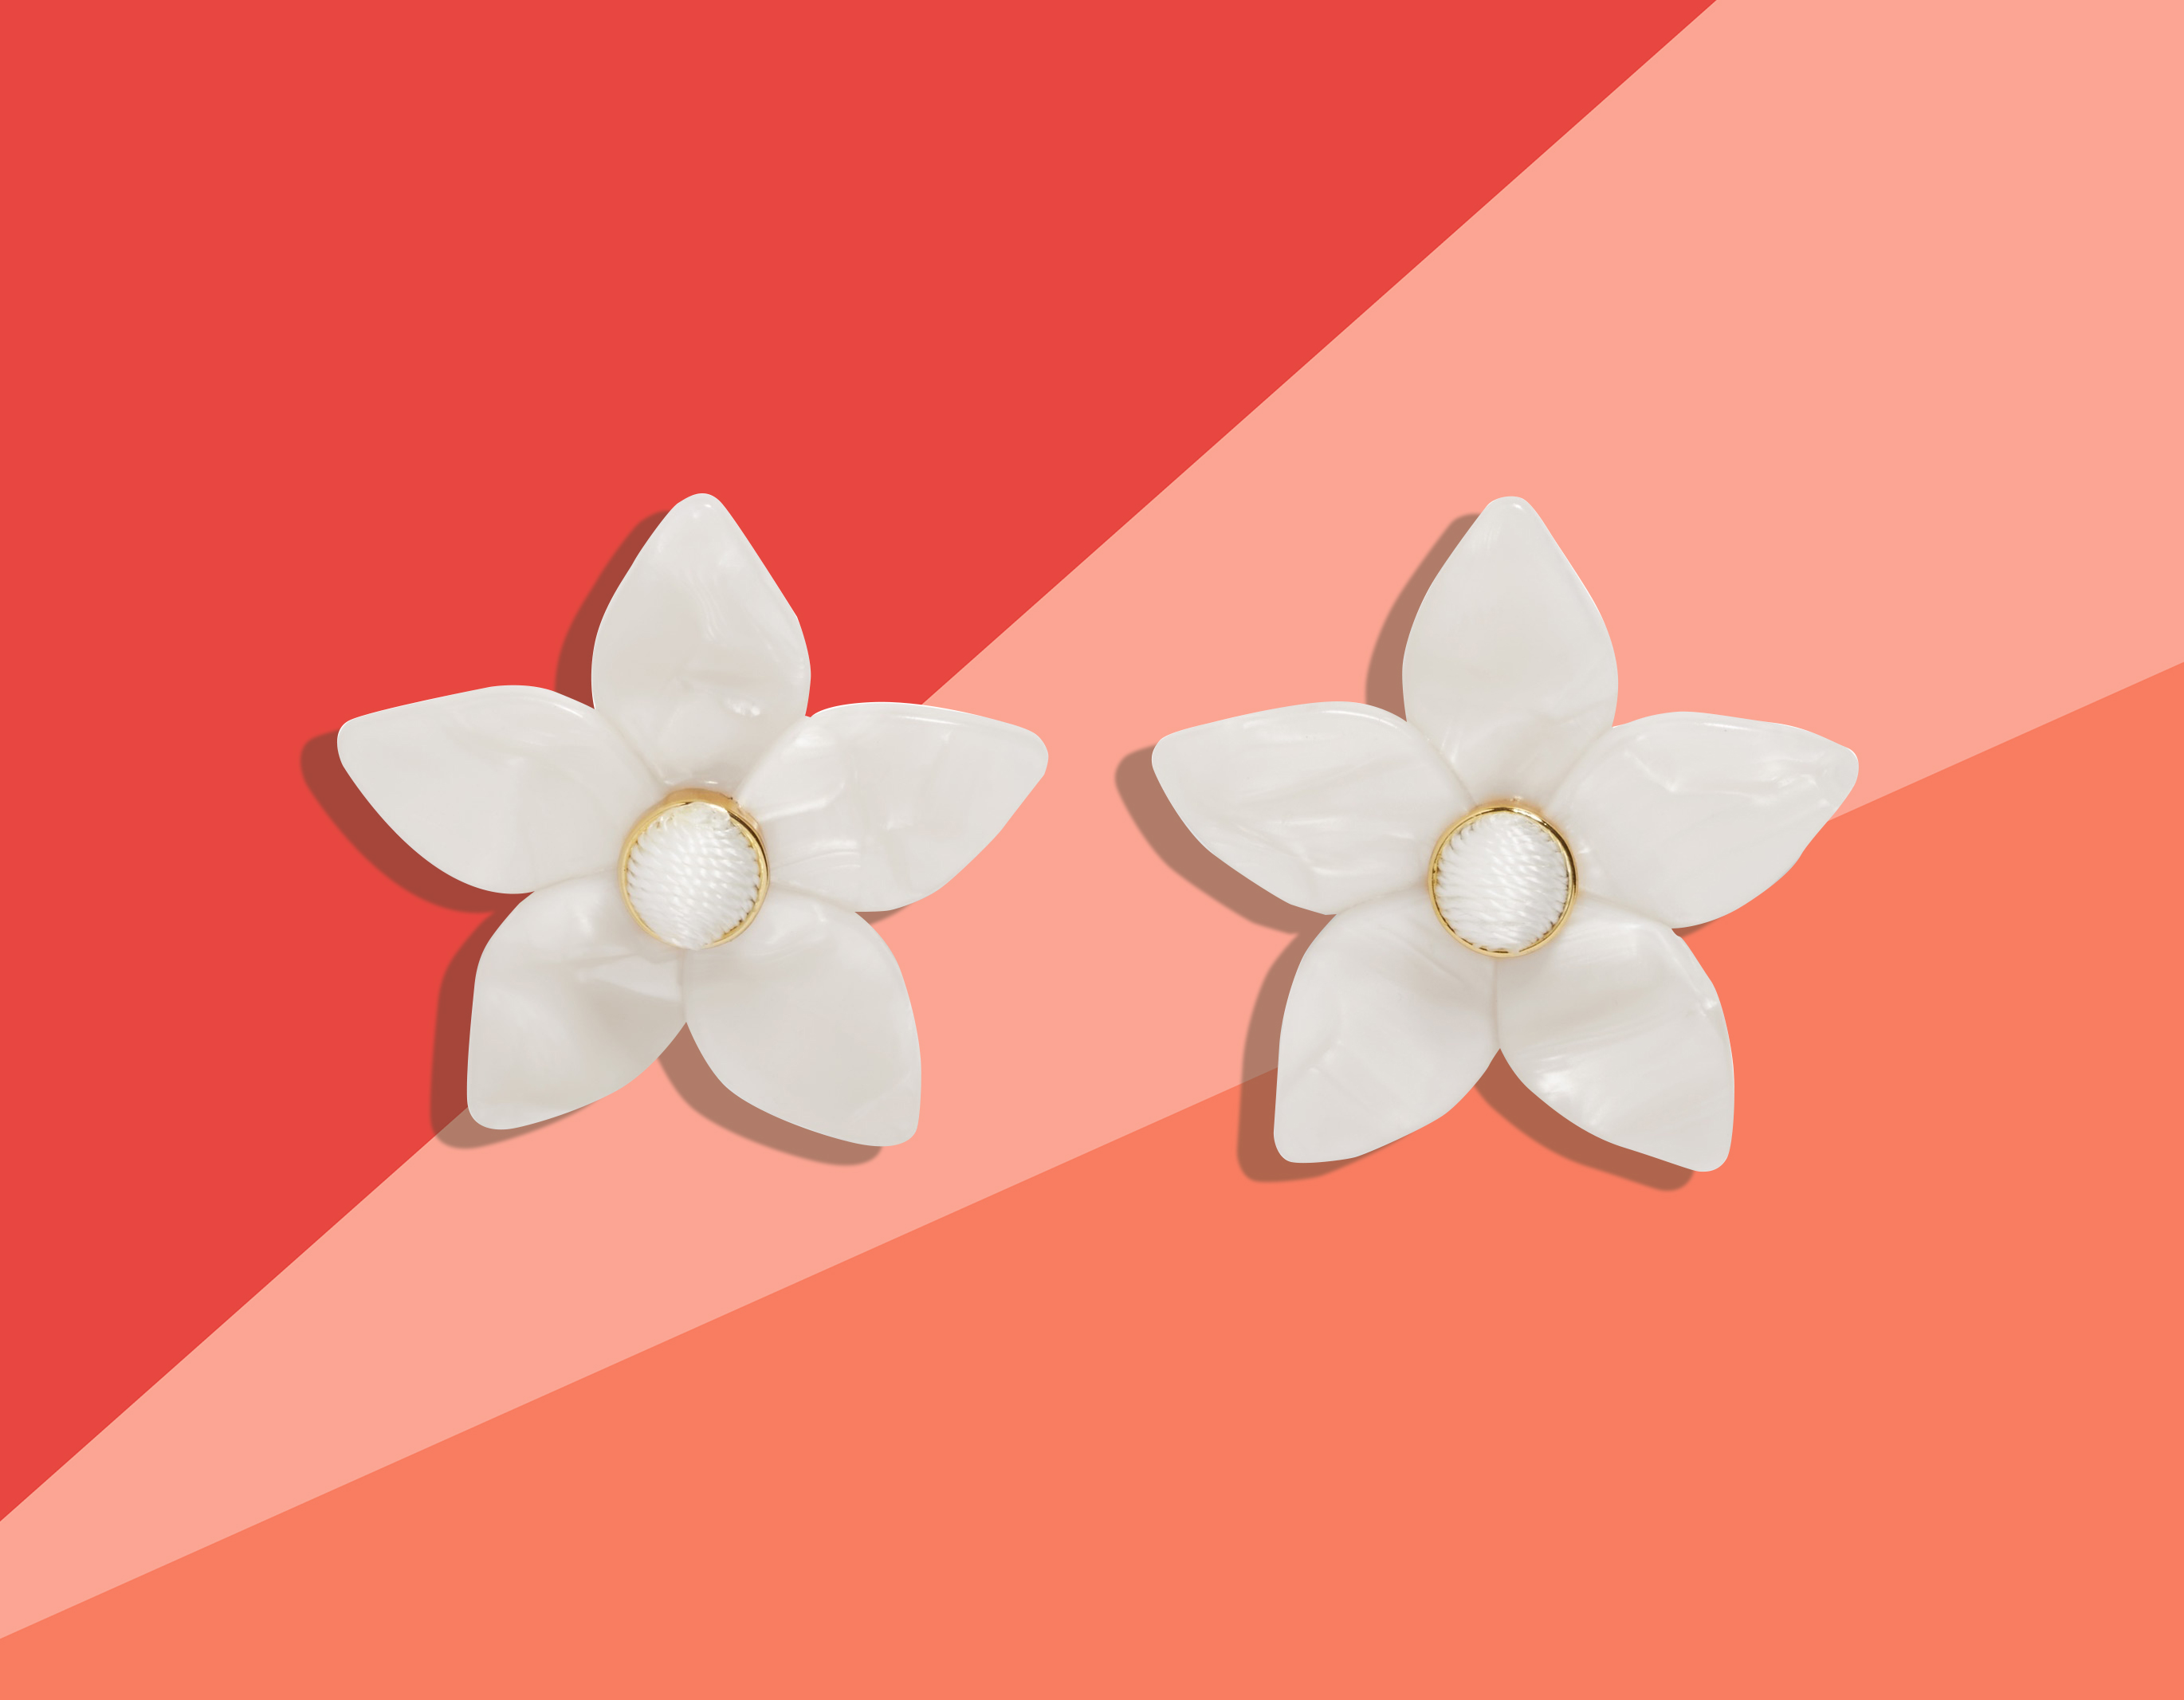 5 Jewelry Trends You'll See Everywhere This Spring